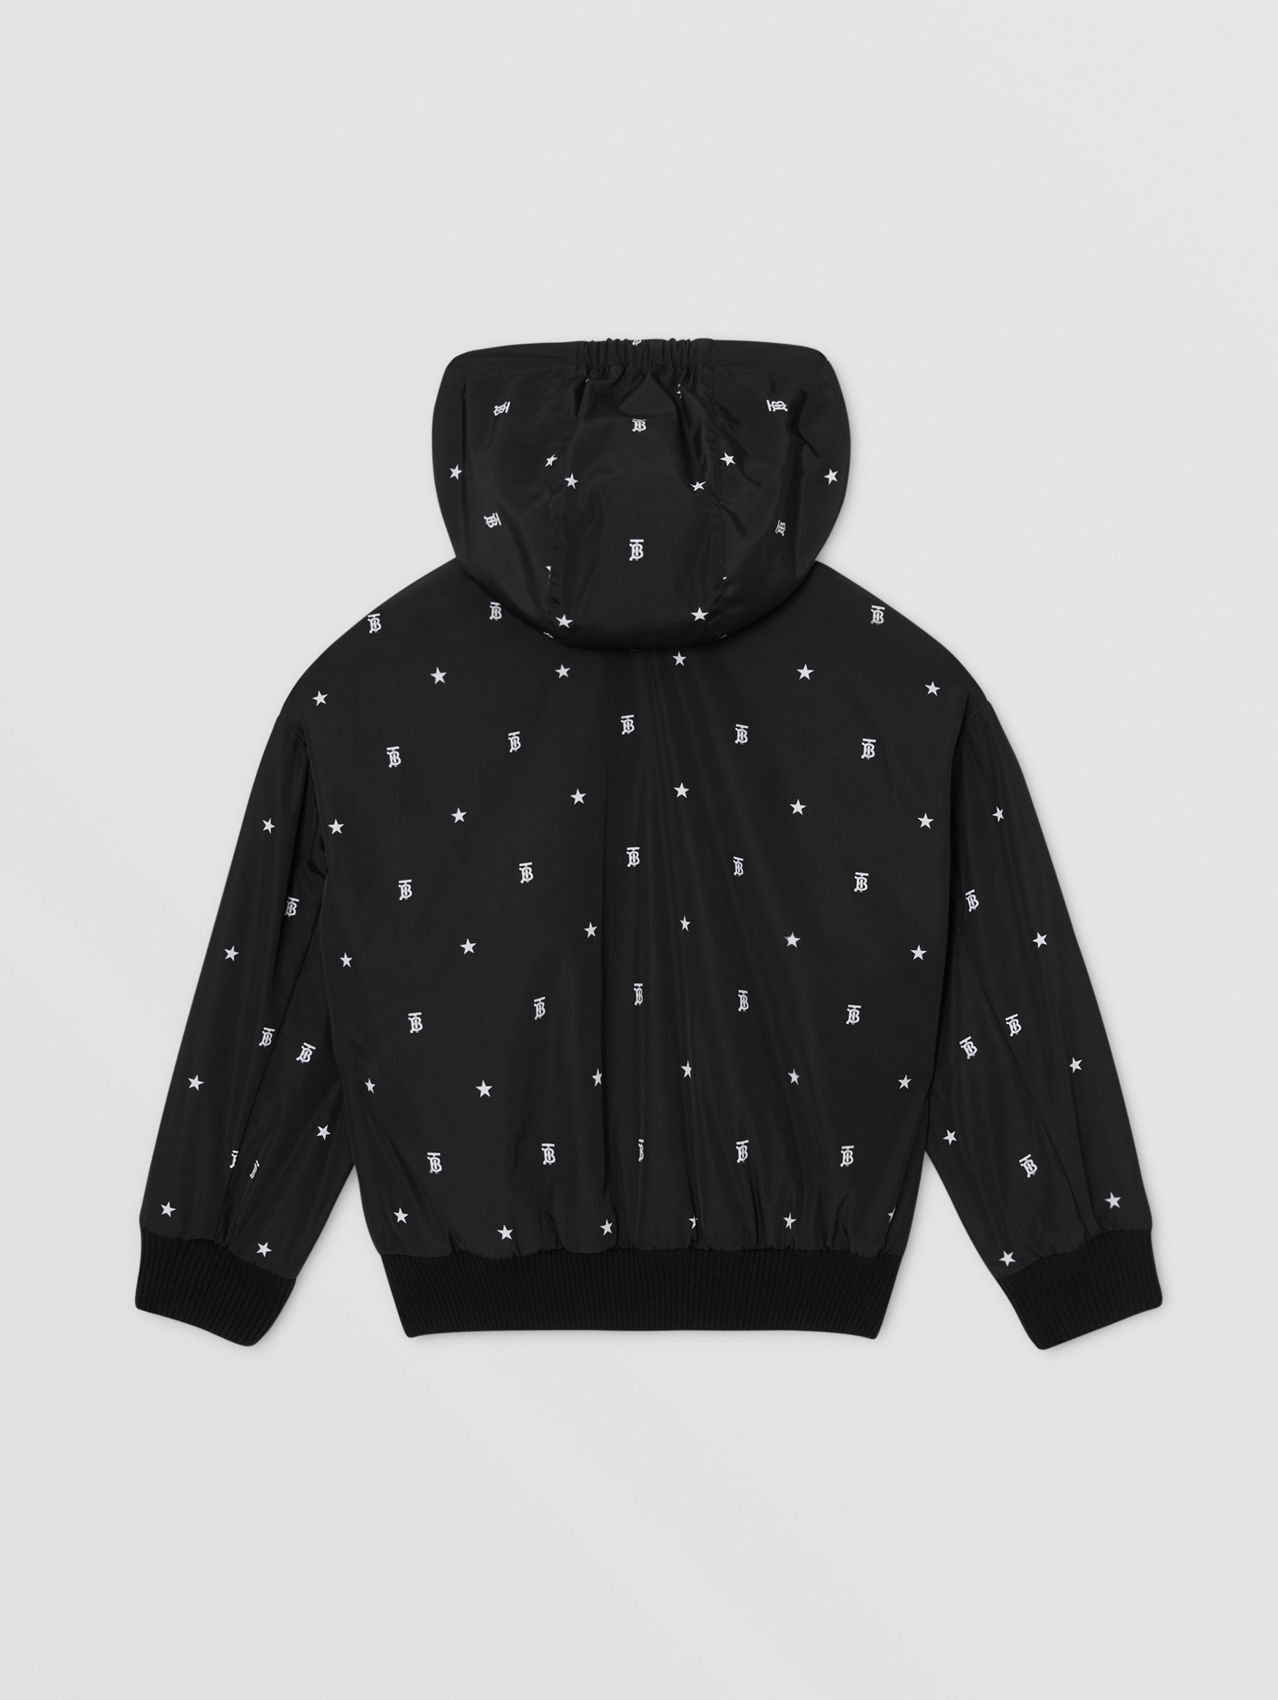 Star and Monogram Motif Lightweight Hooded Jacket in Black